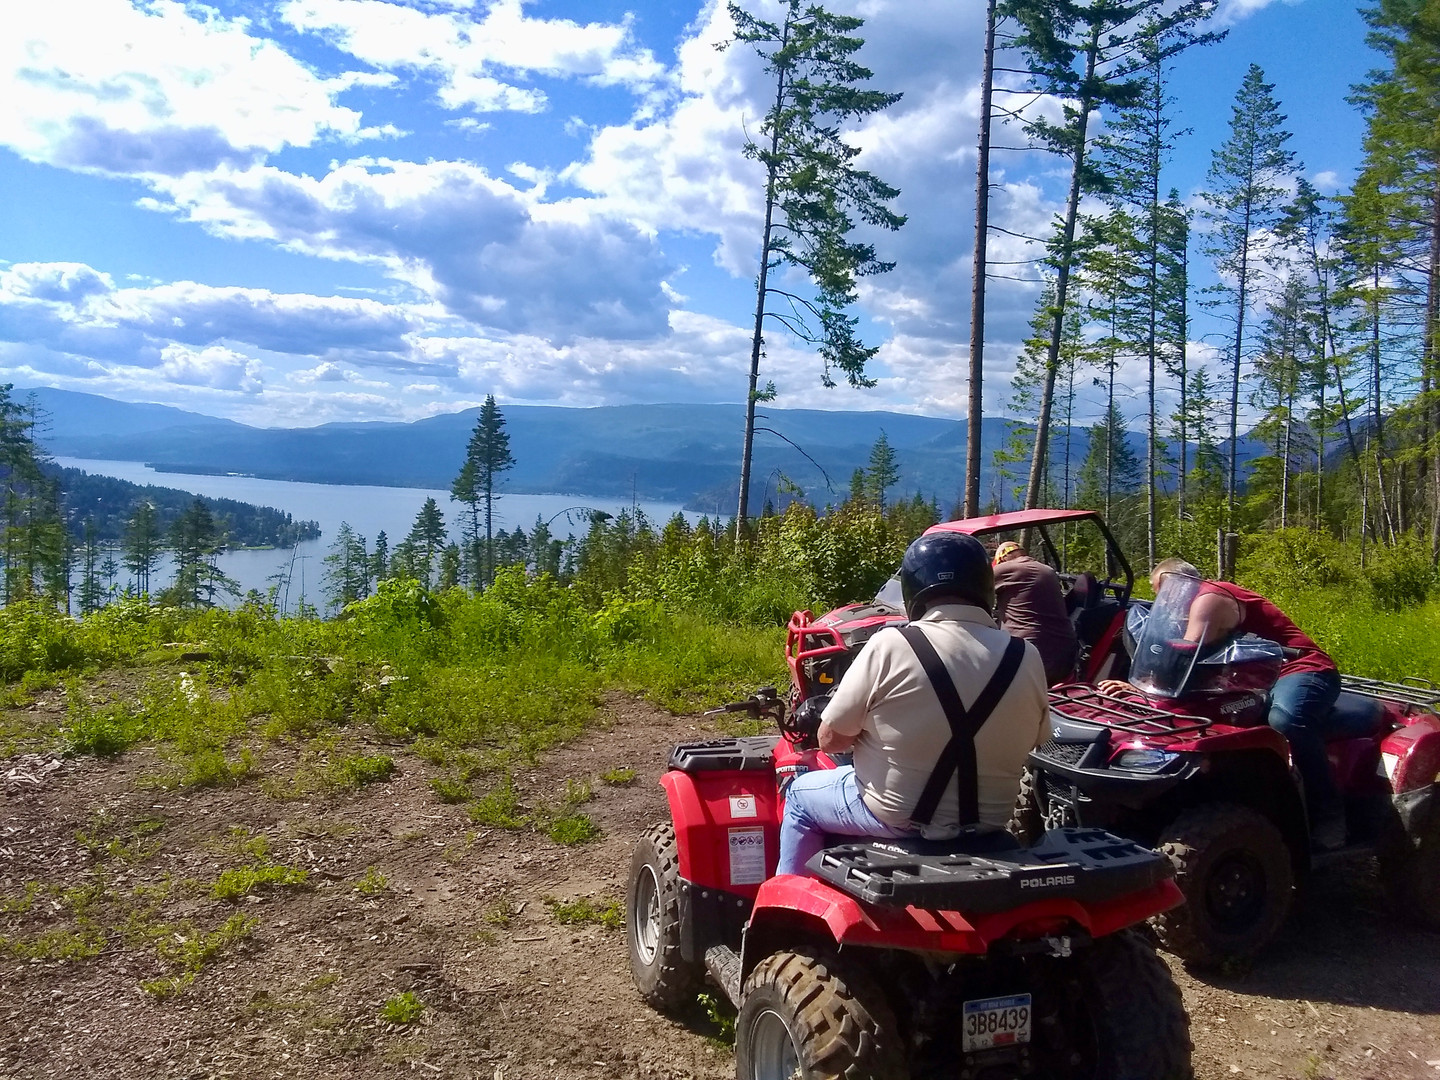 Lots of off road ATV trails